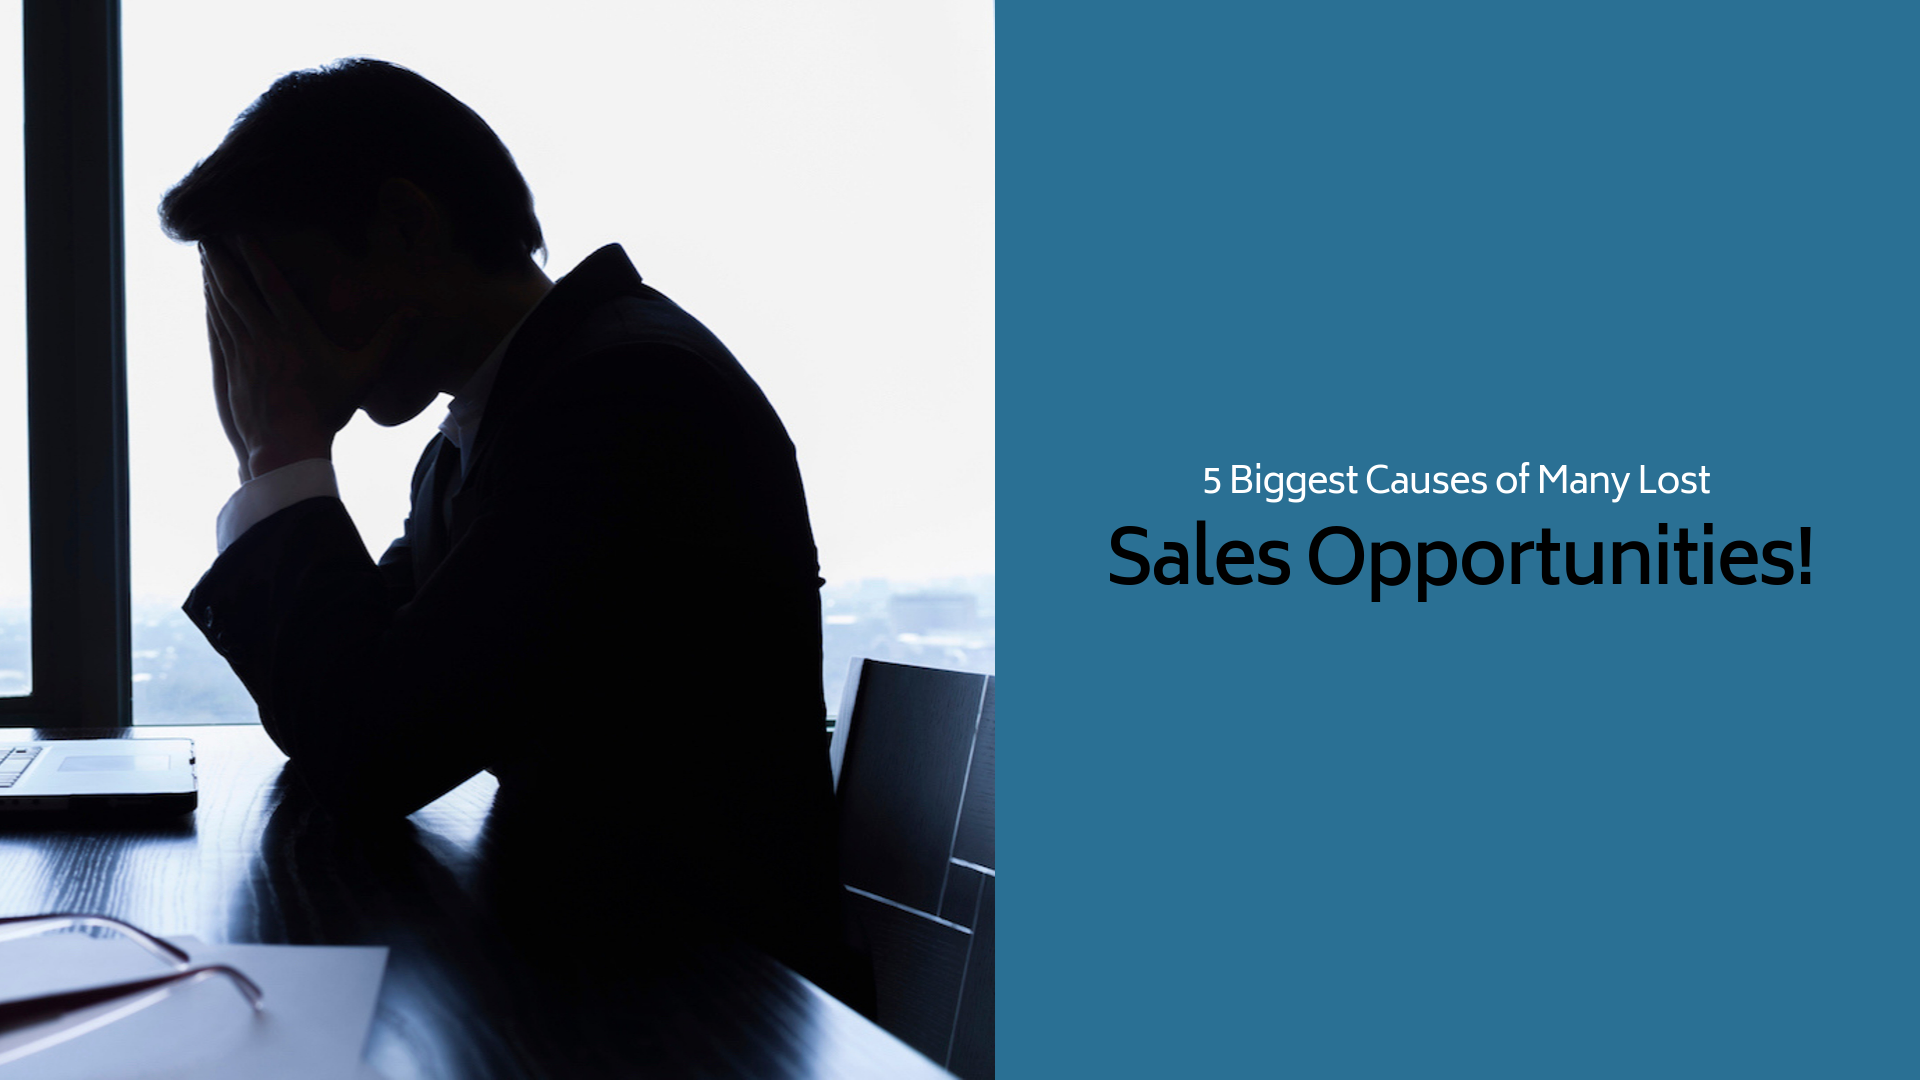 5 Biggest Causes of Many Lost Sales Opportunities